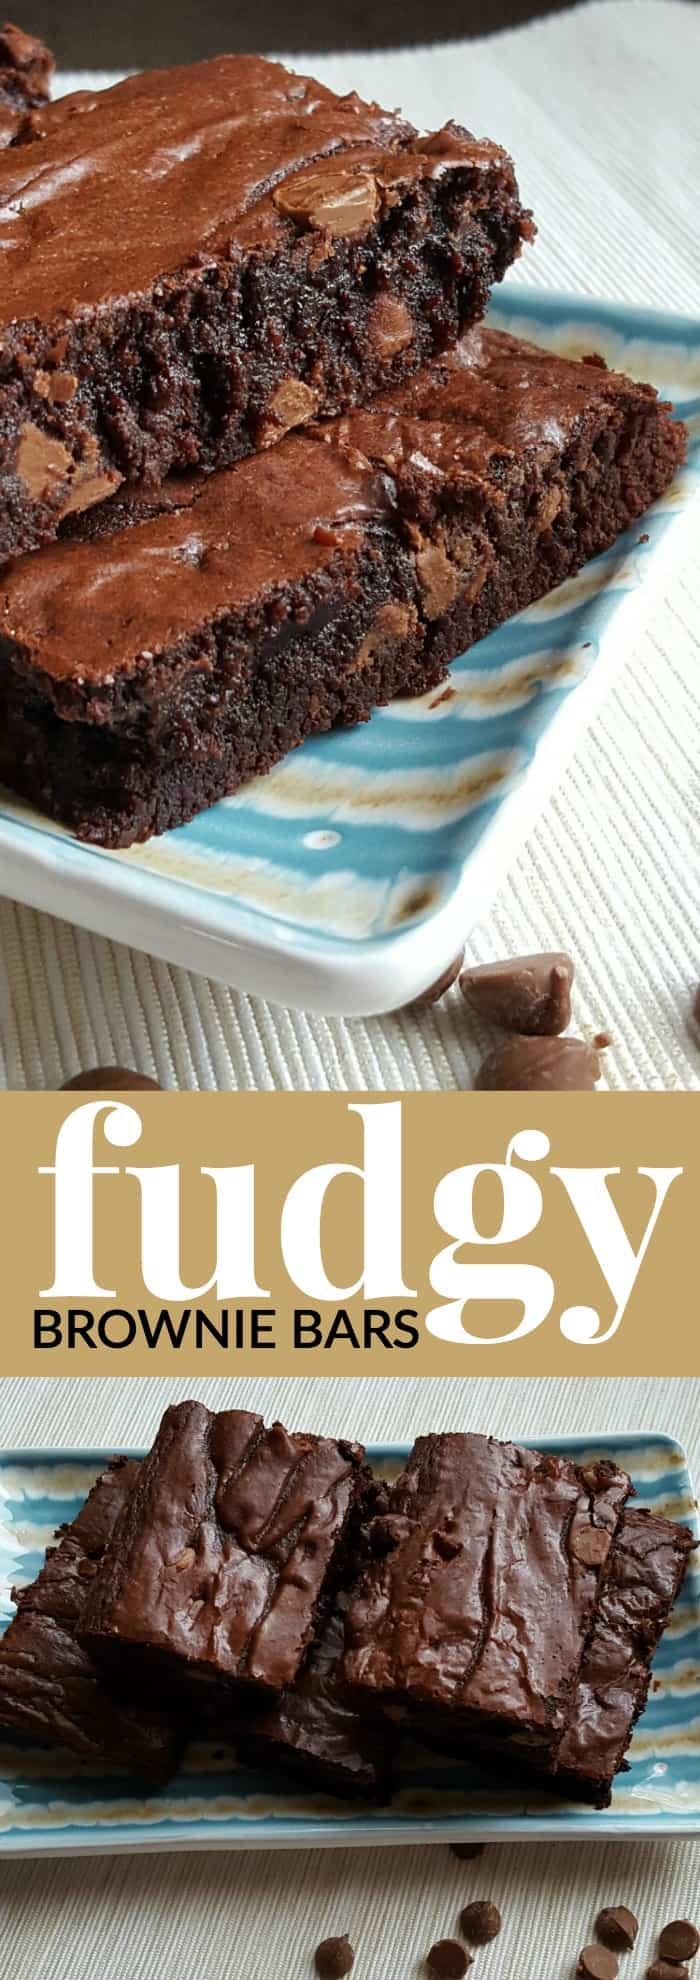 These fudgy brownie bars are the perfect dessert. They are an irresistibly delicious crowd pleaser.